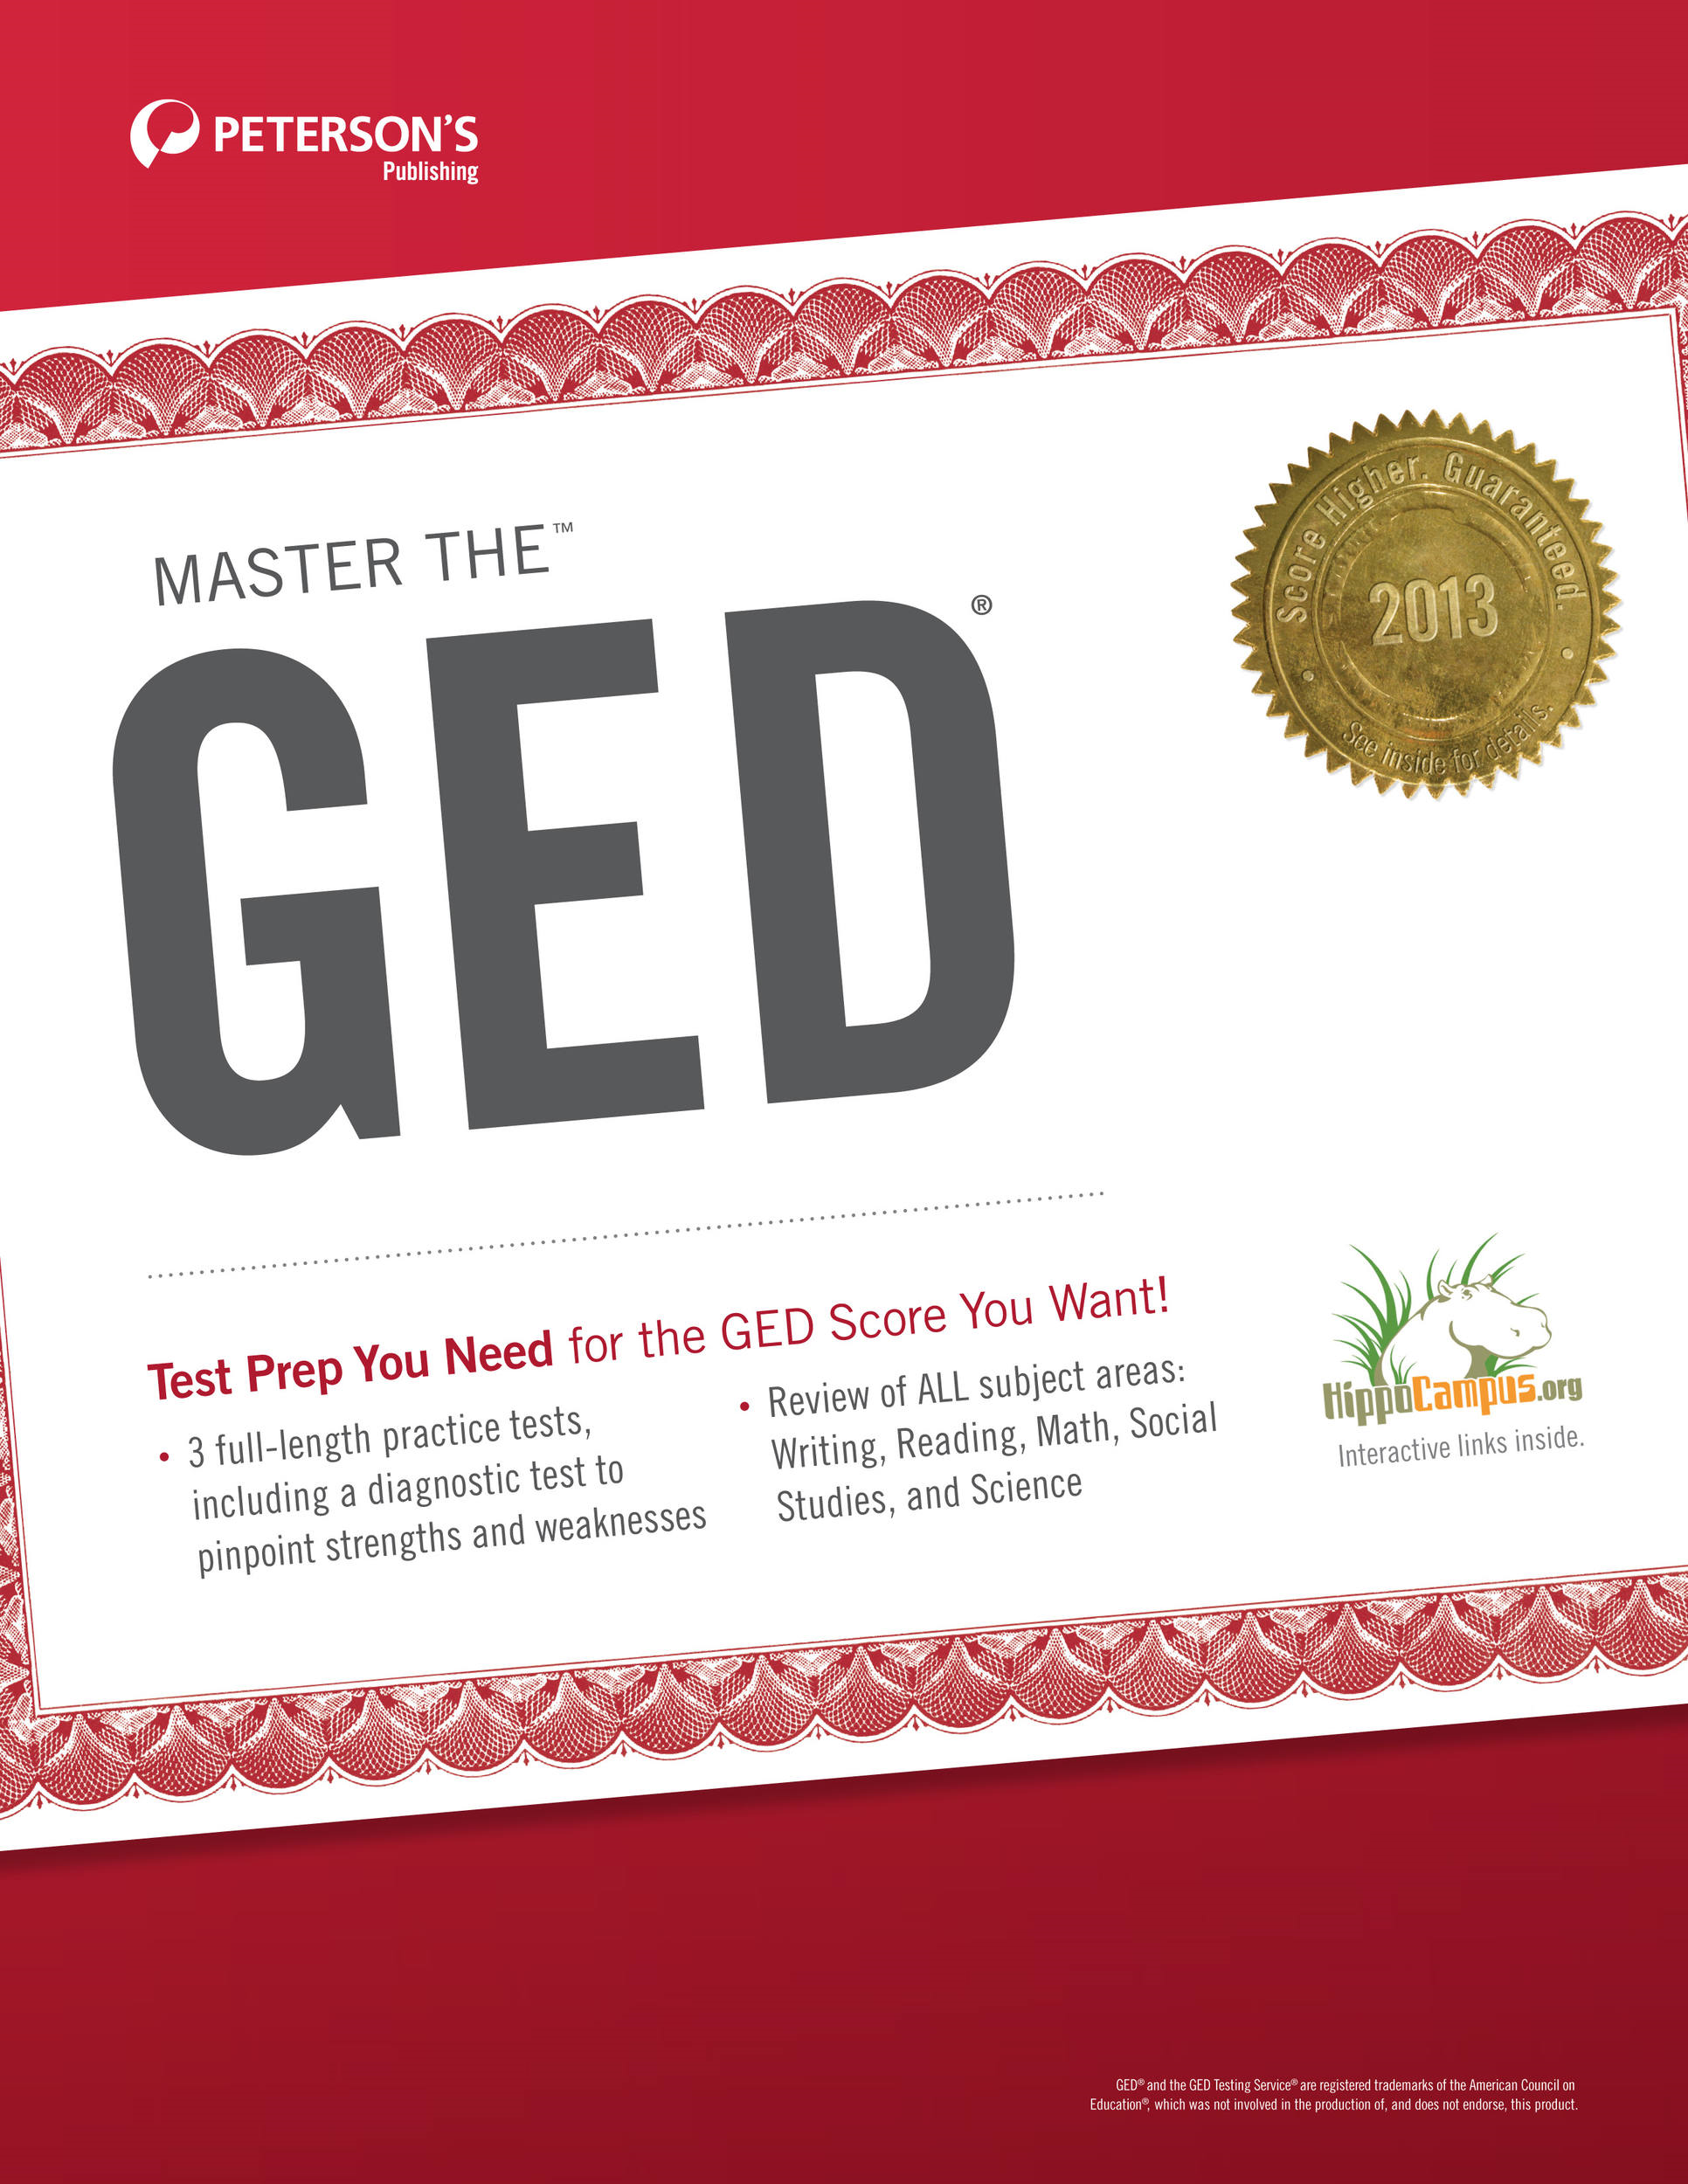 Master the GED: The Language Arts, Writing Test